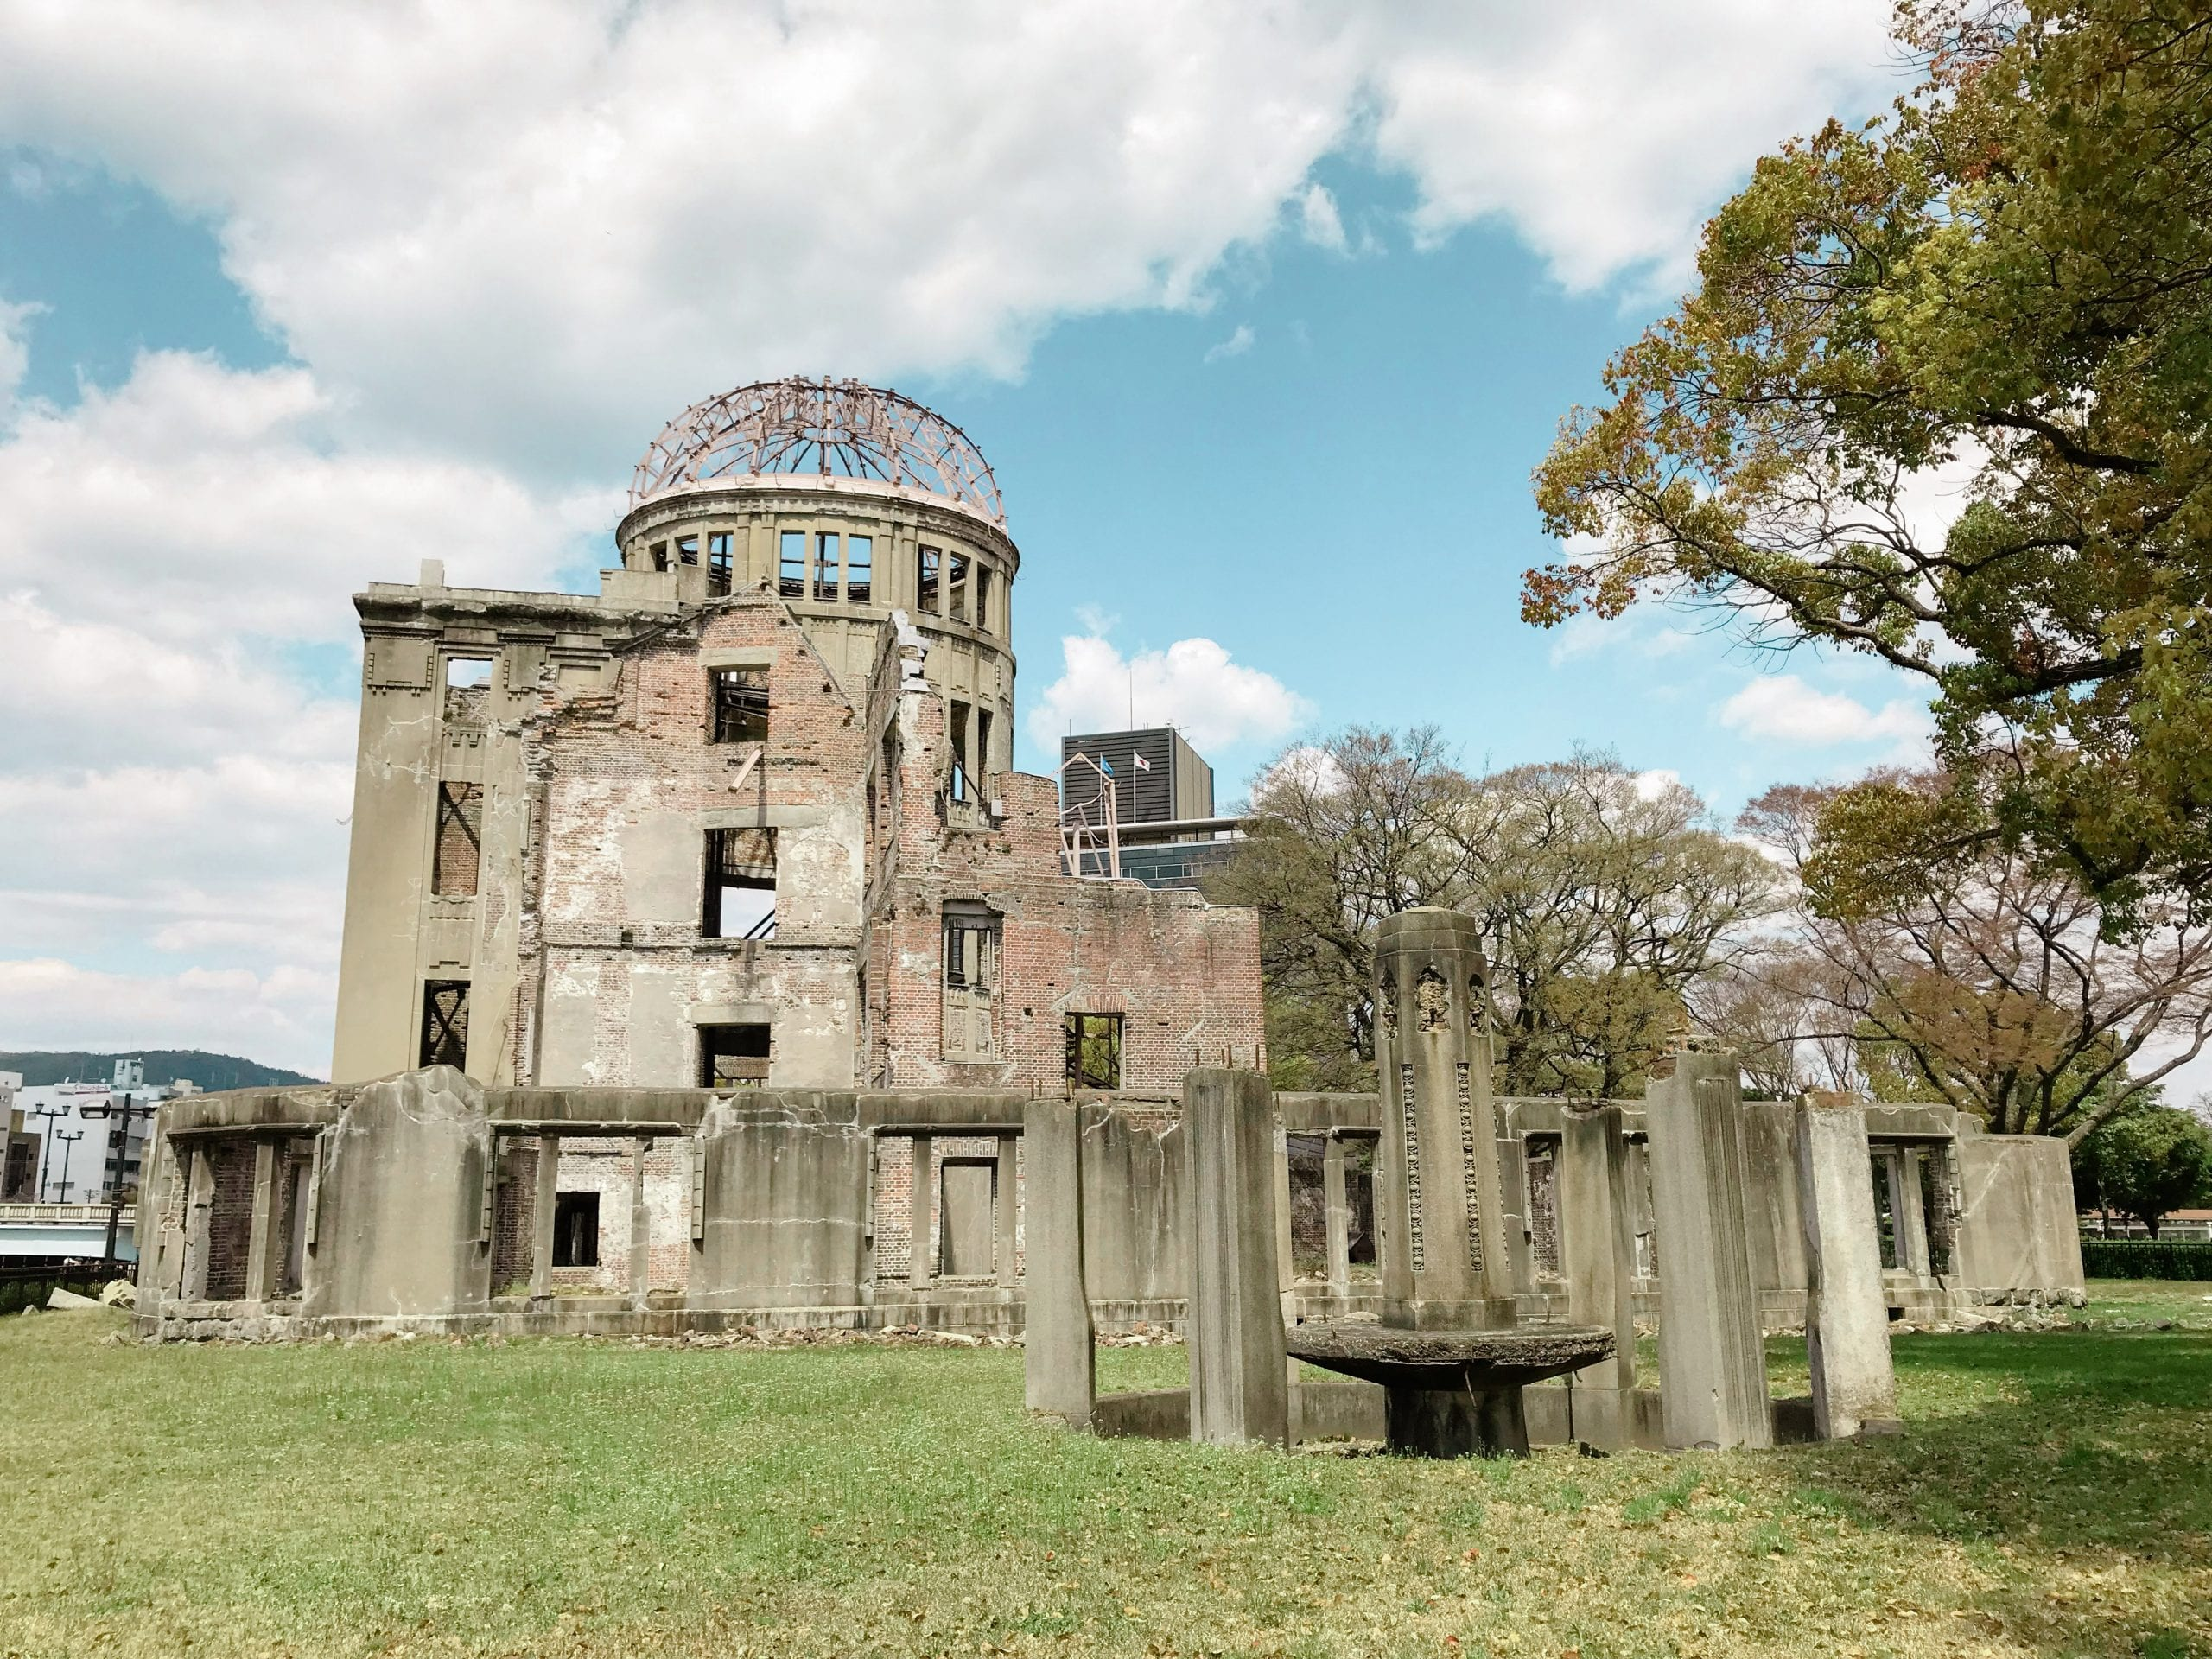 Japan Rundreise Reiseroute Highlights hiroshima atombombenkuppel